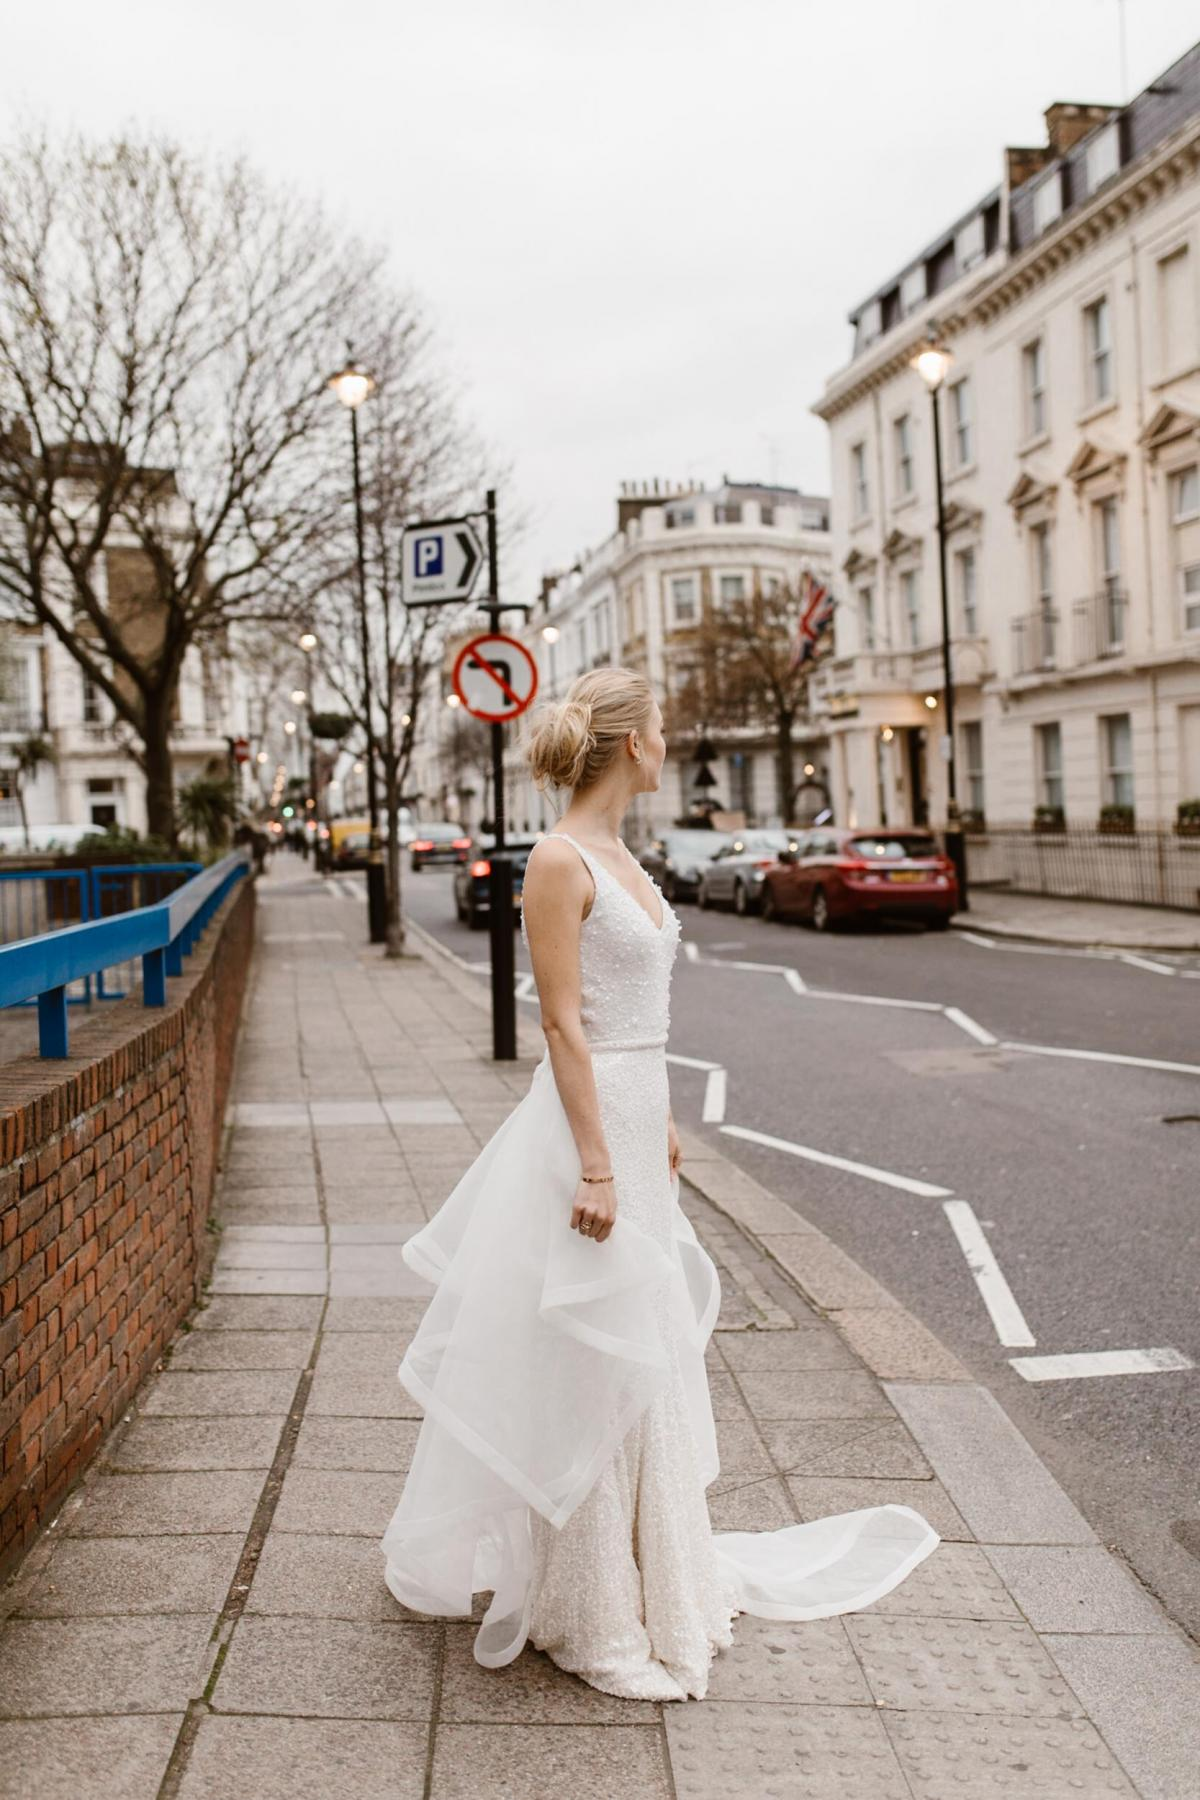 The Lola gown by Karen Willis Holmes, v-neck beaded wedding dress shown with detachable train.